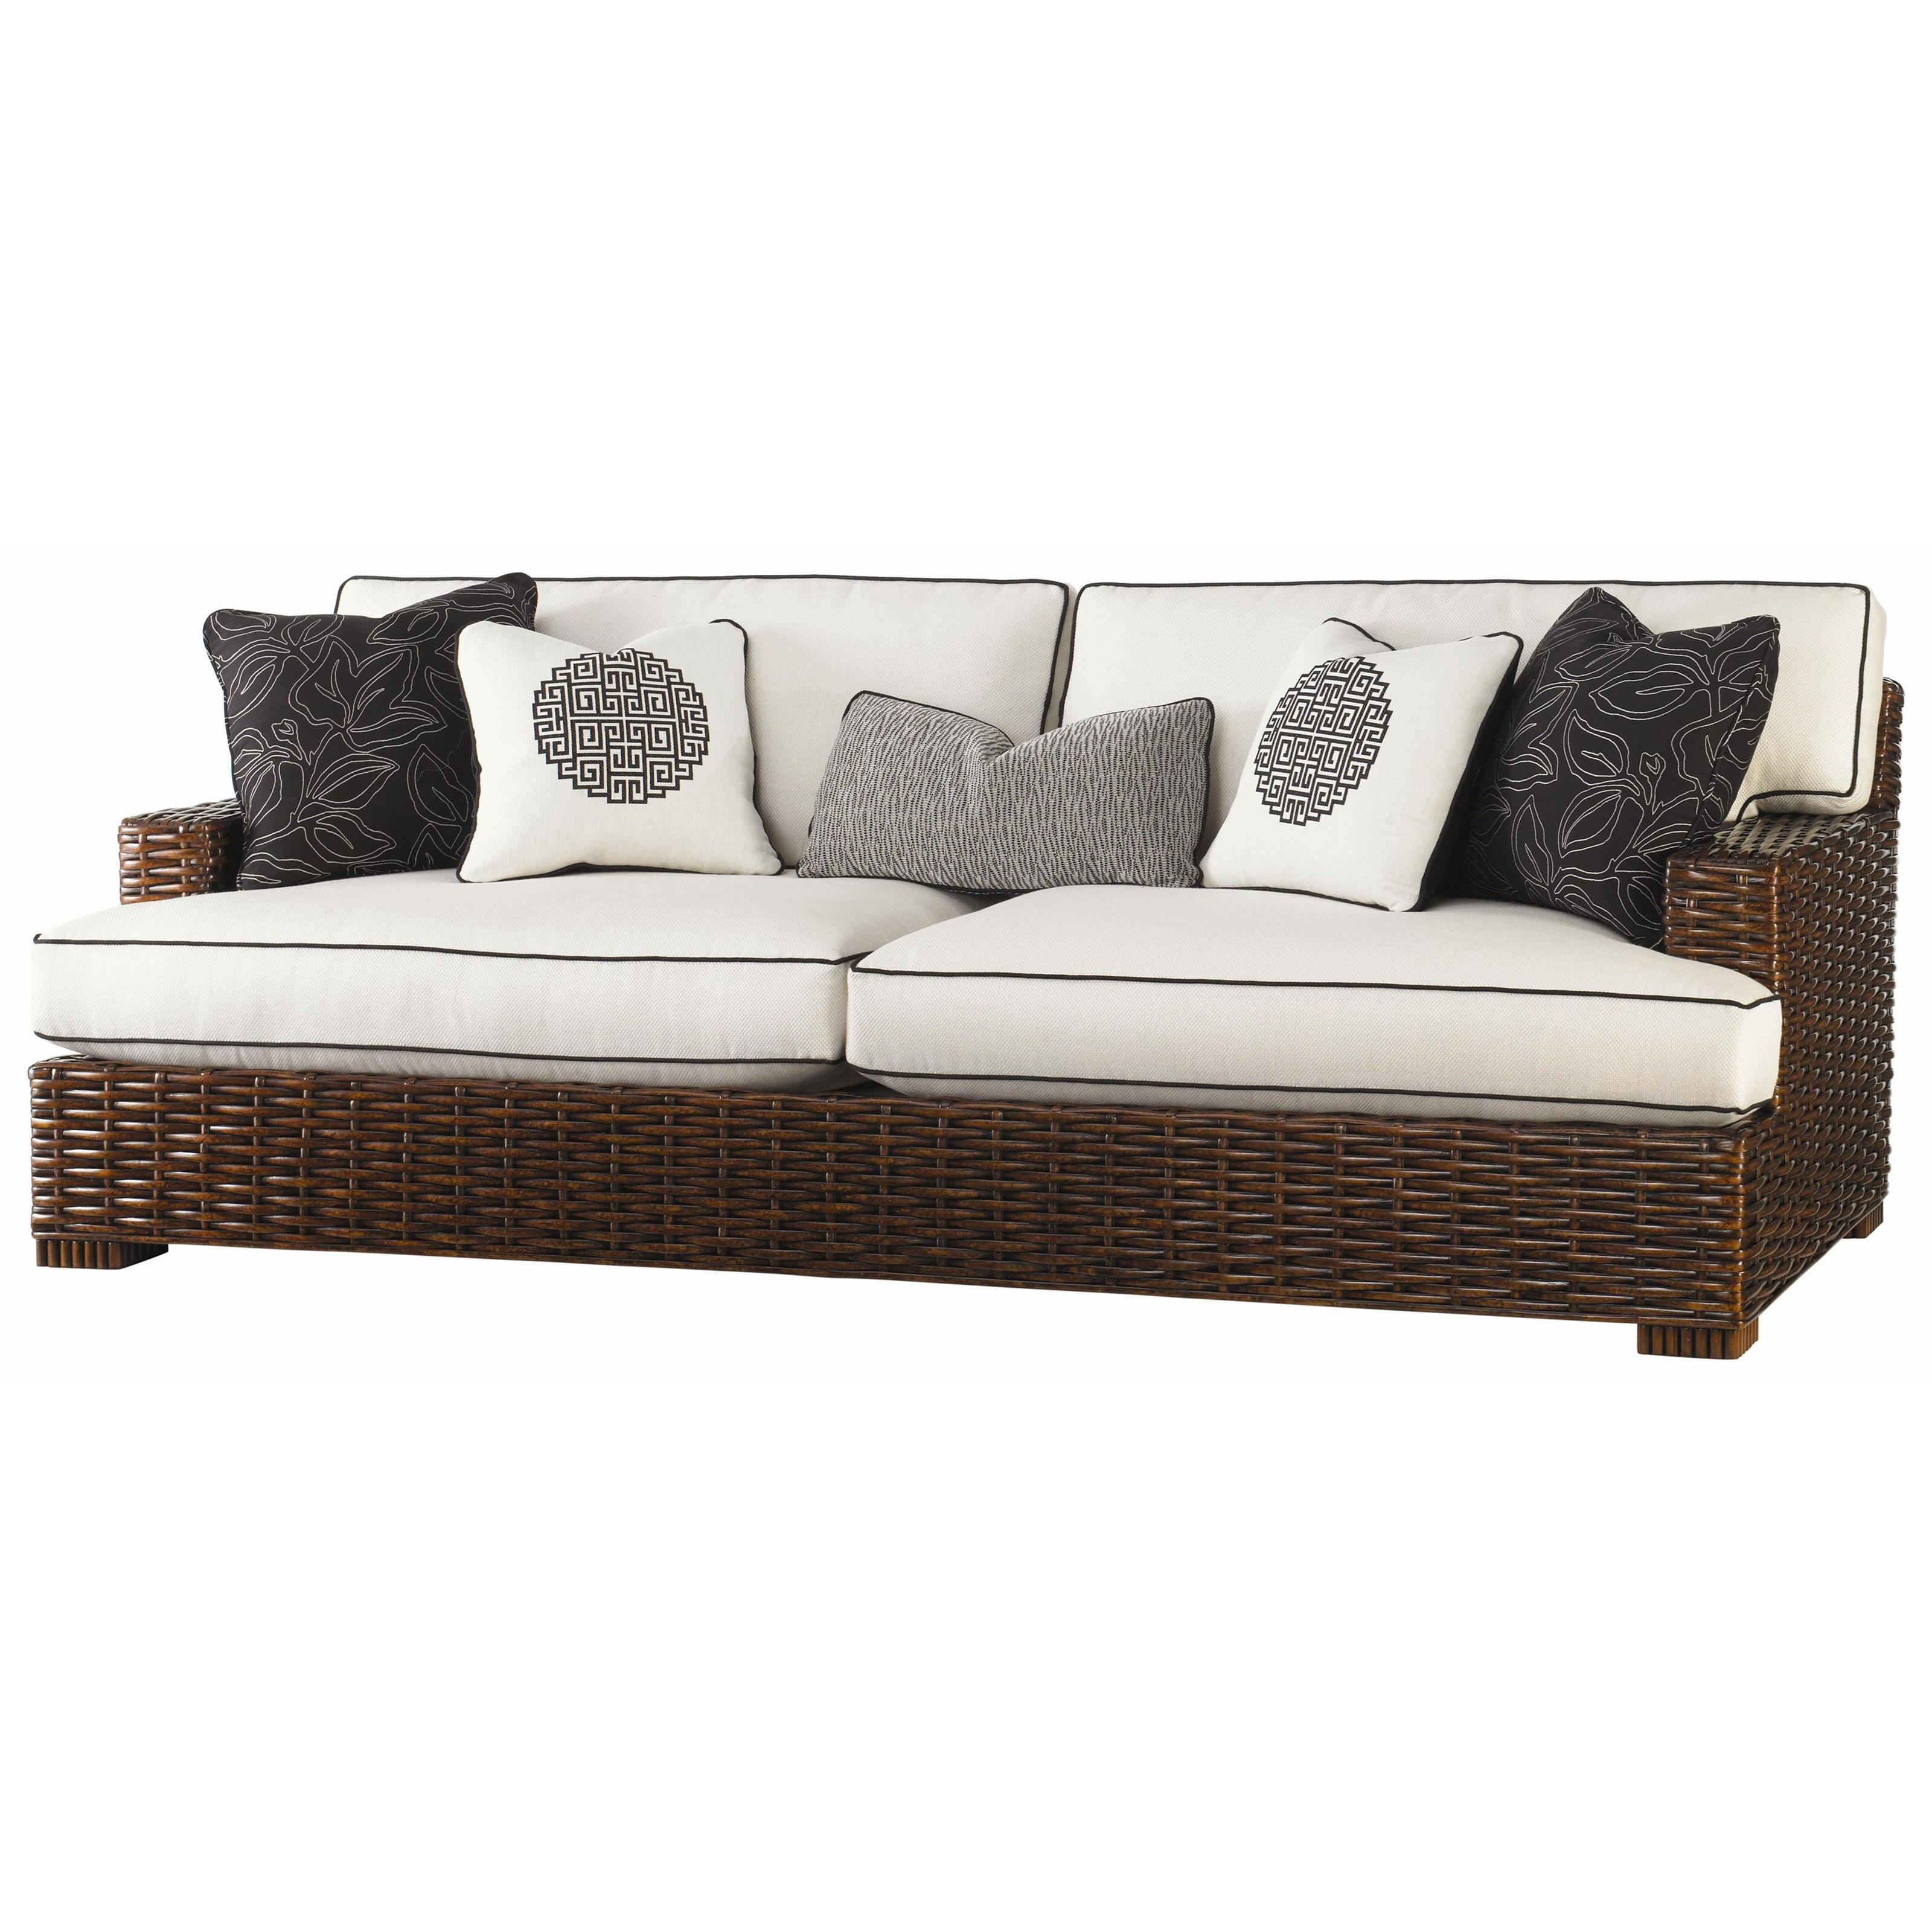 Tommy Bahama Home Ocean Club Salina Sofa - Item Number: 1792-33-4826-11